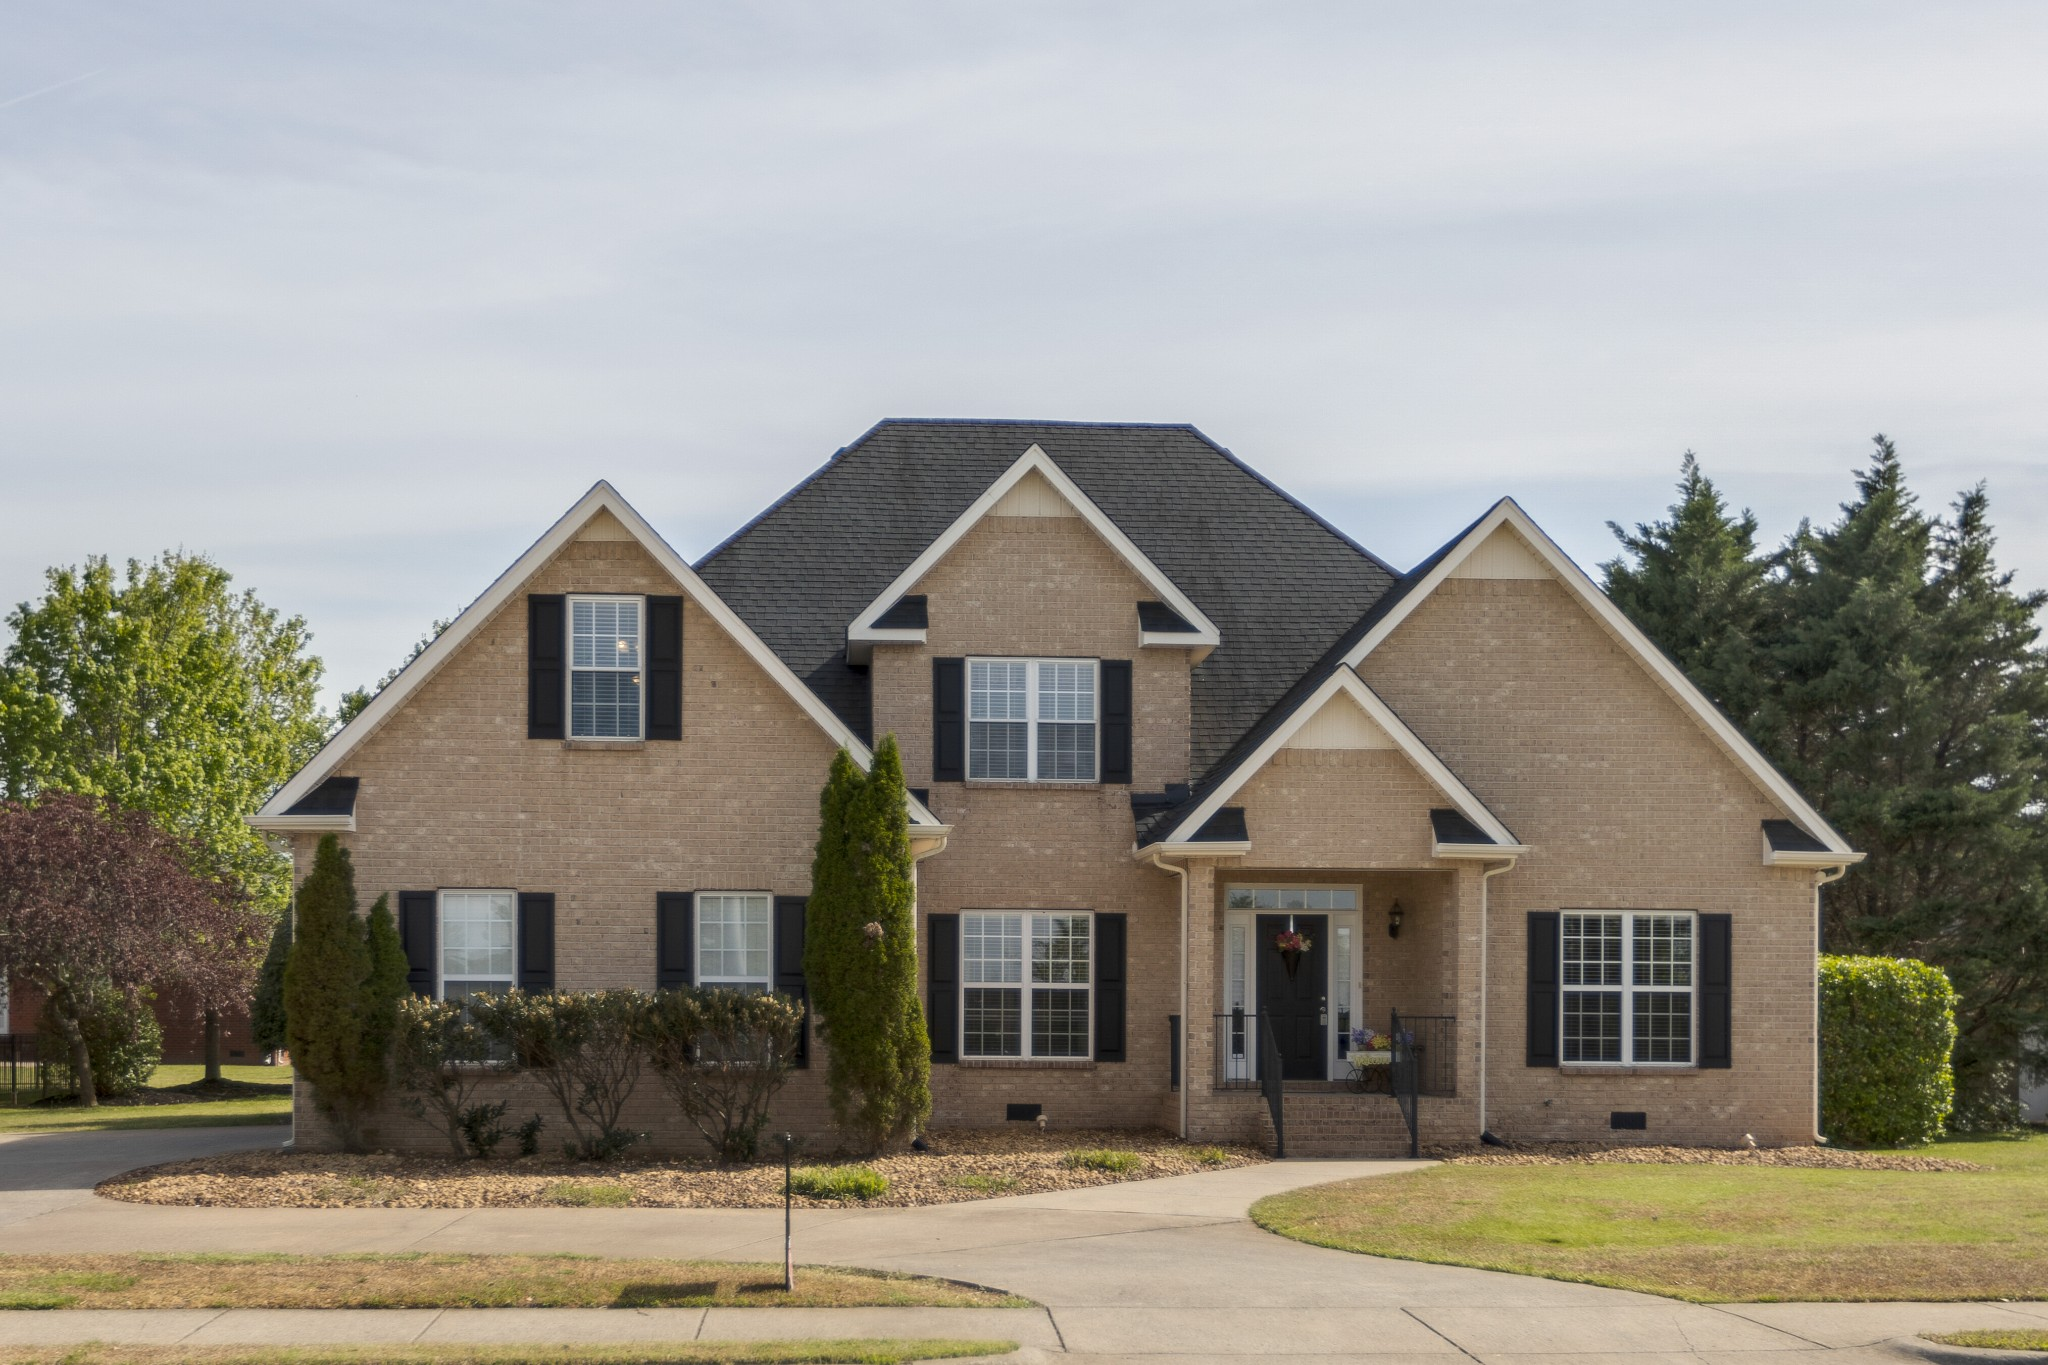 754 Osborne Ln Property Photo - Murfreesboro, TN real estate listing